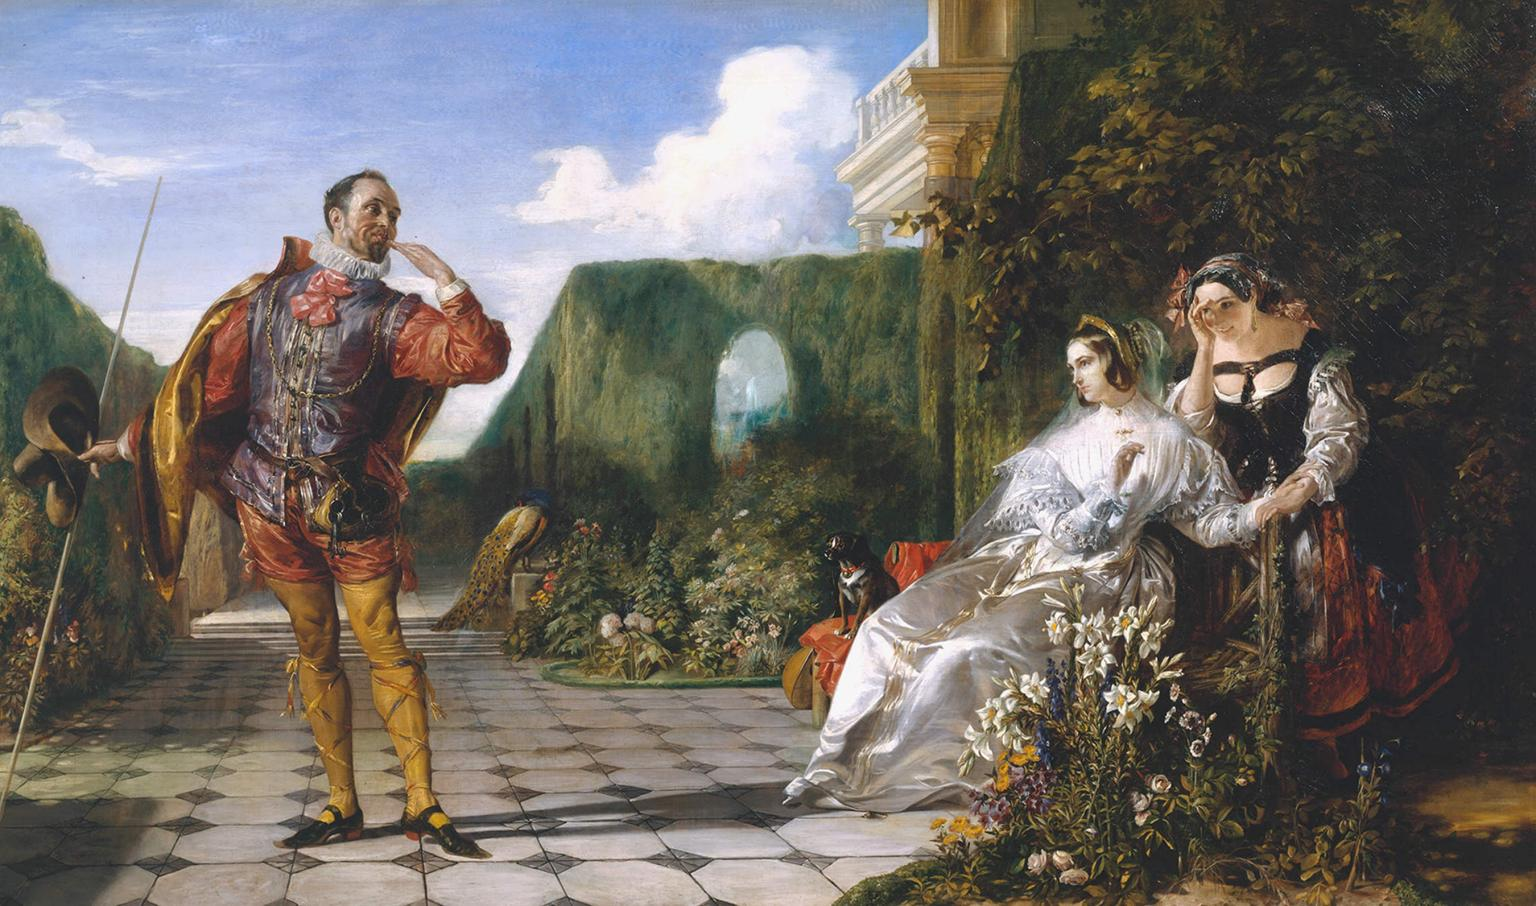 Malvolio with his cross-garters, in front of the lady Olivia, and her maid Maria.